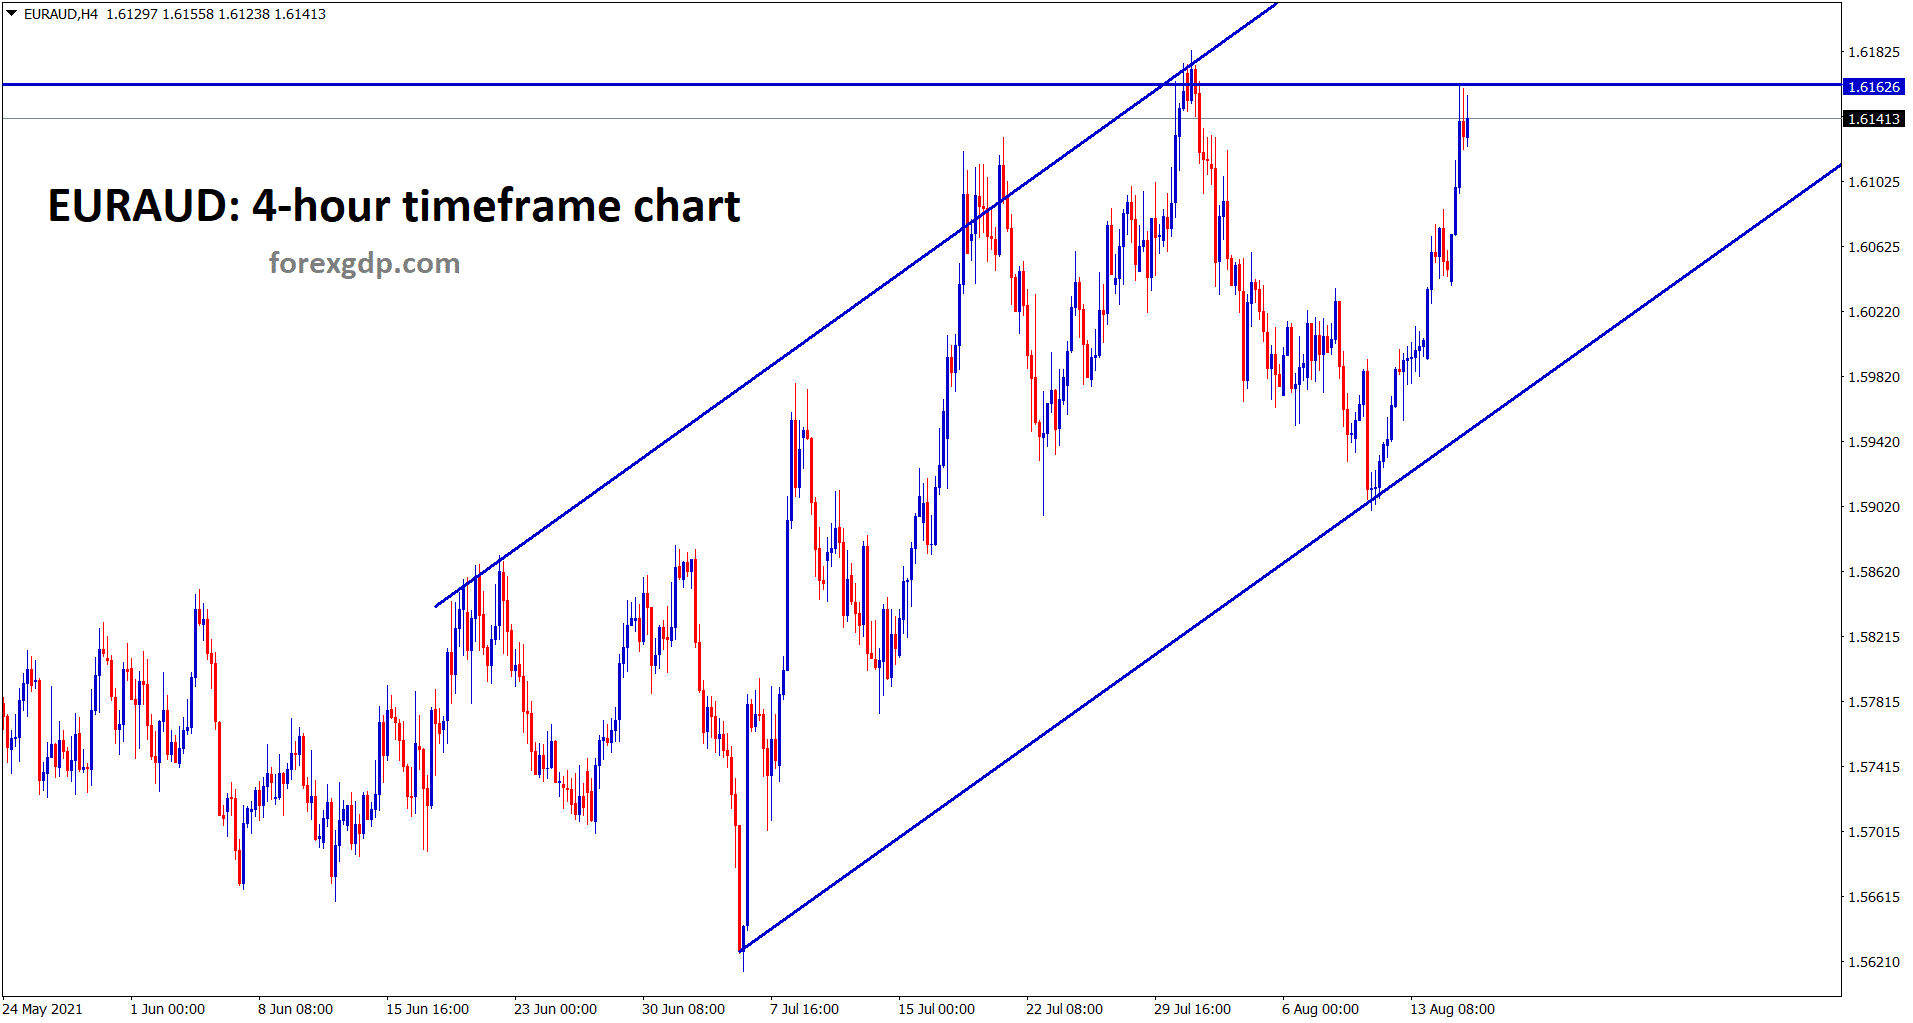 EURAUD continues the uptrend and hits resistance area